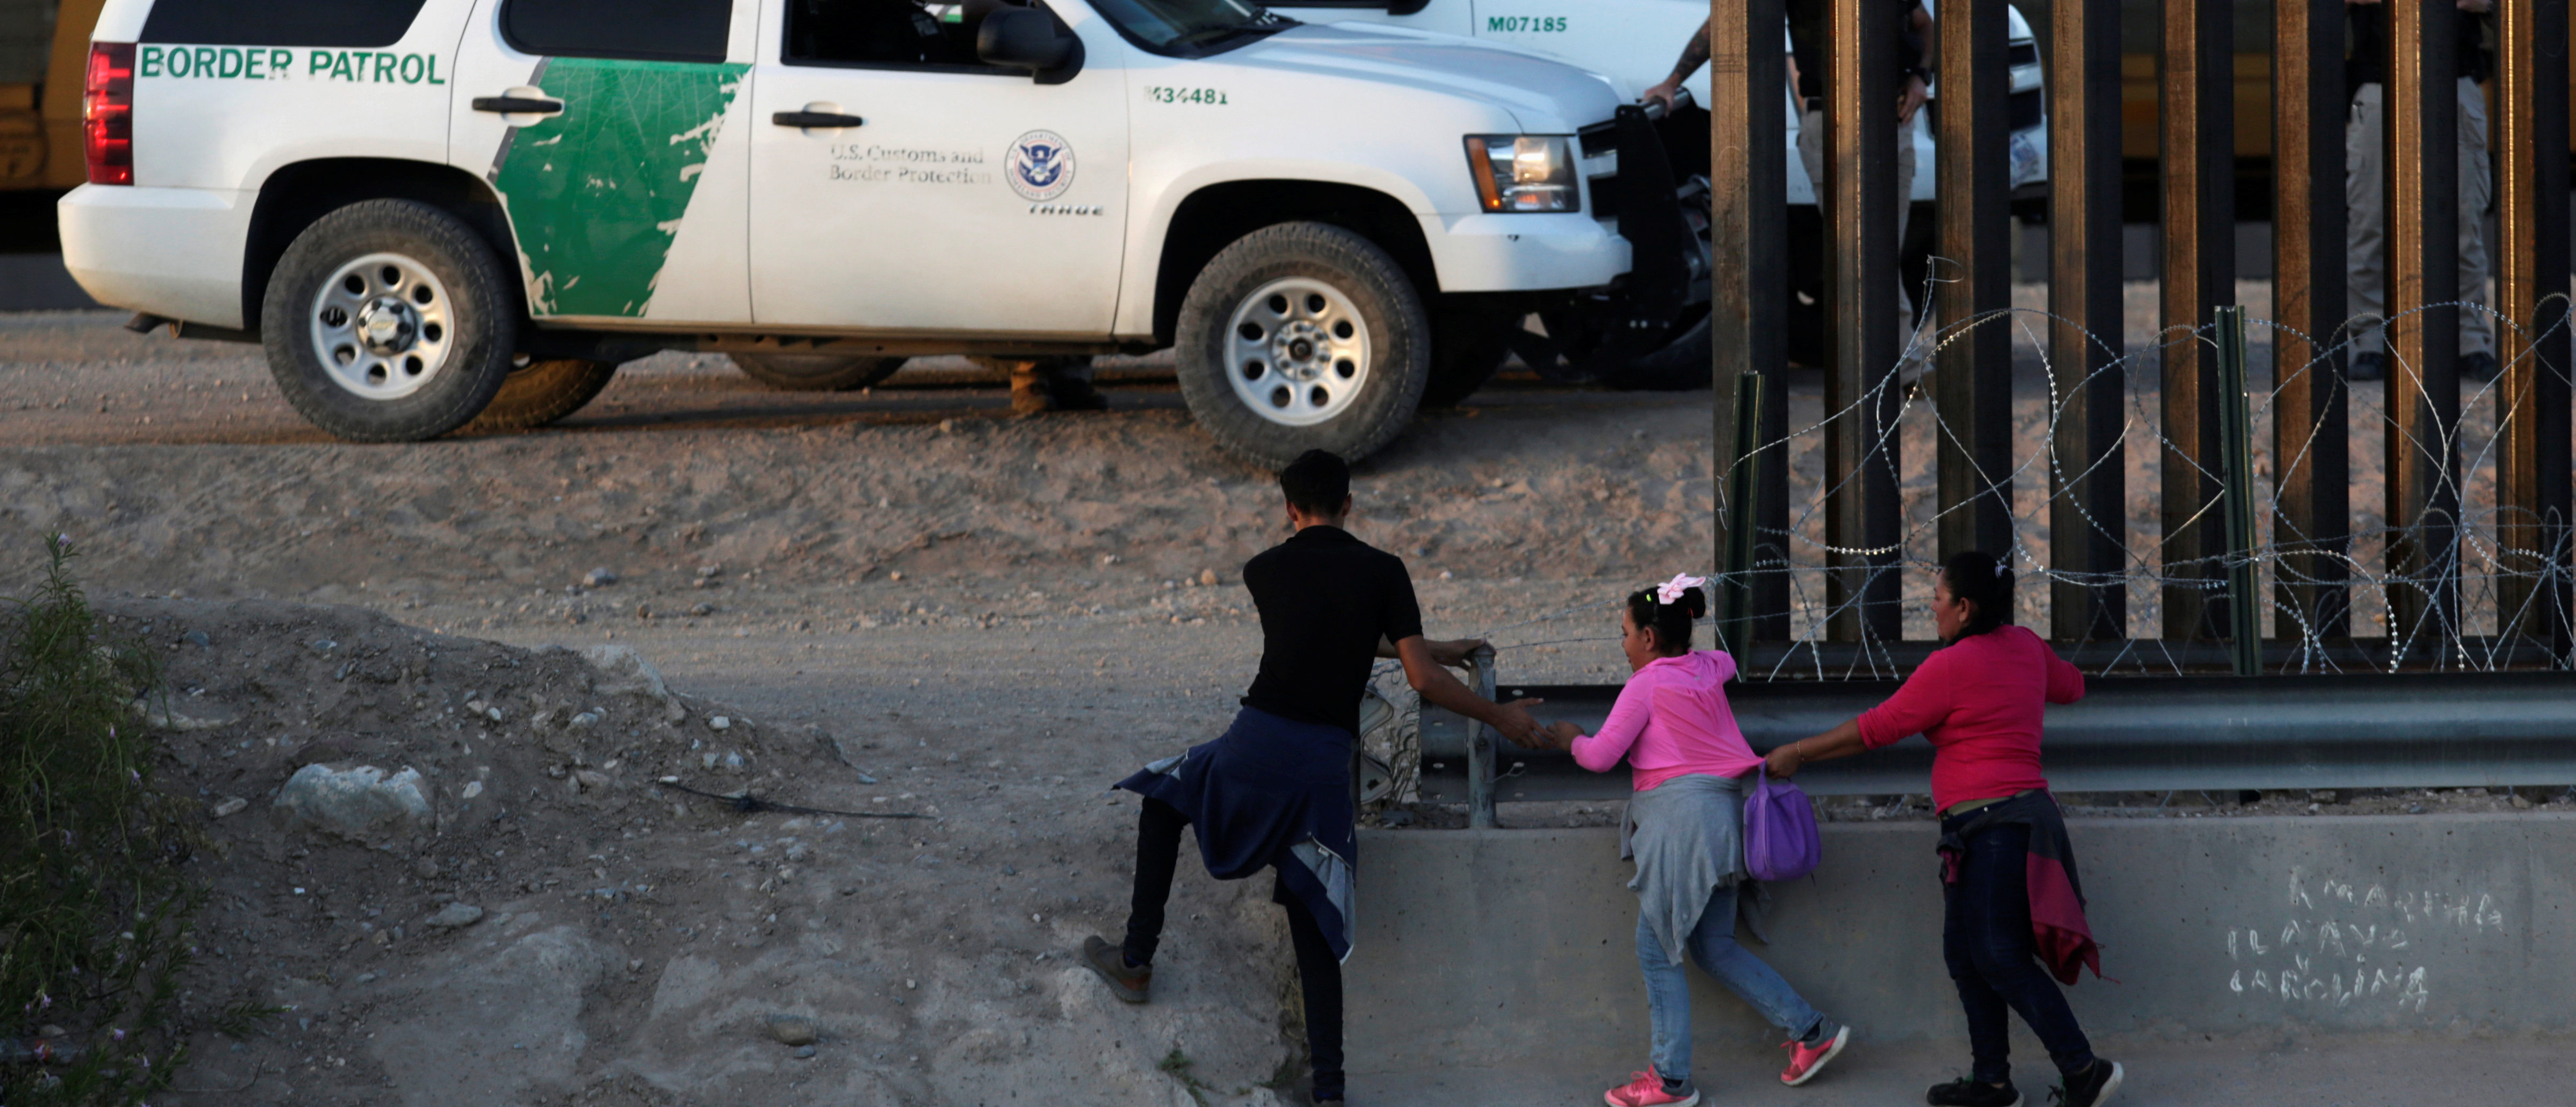 DHS Using Loophole Around Flores To Address Immigration Crisis